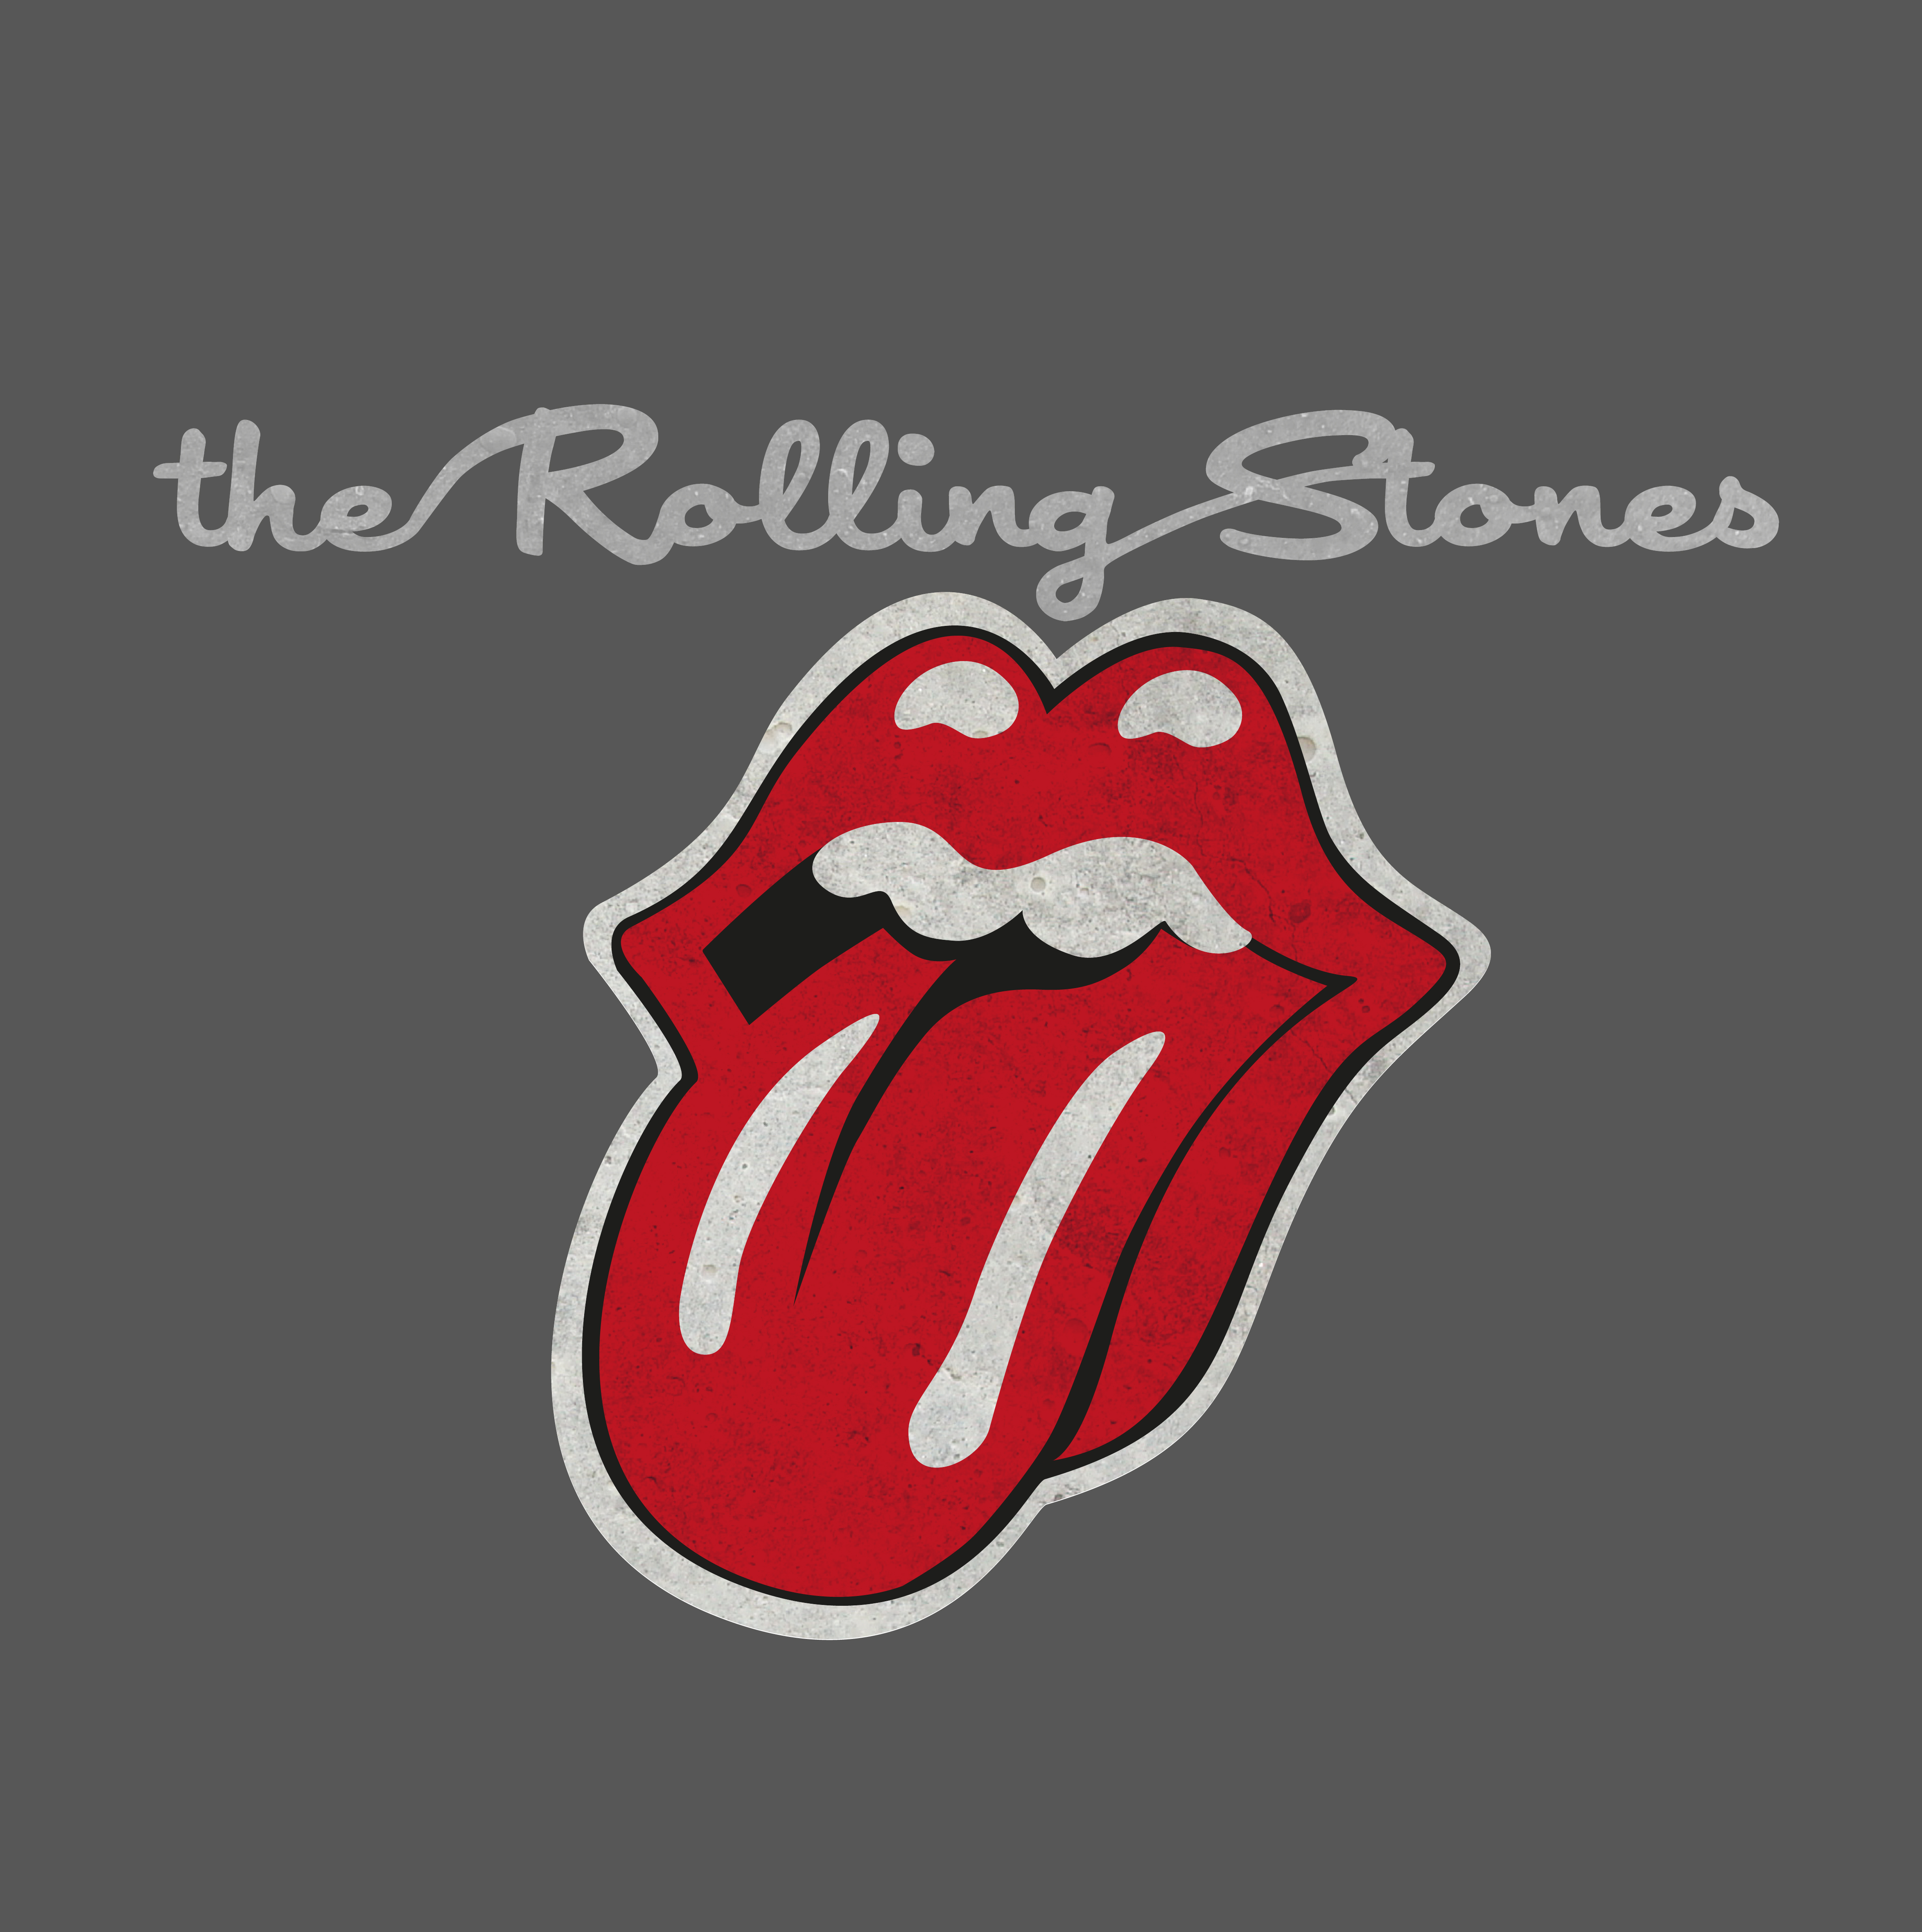 The Rolling Stones Wallpaper Rolling Stones Rolling Stones Logo